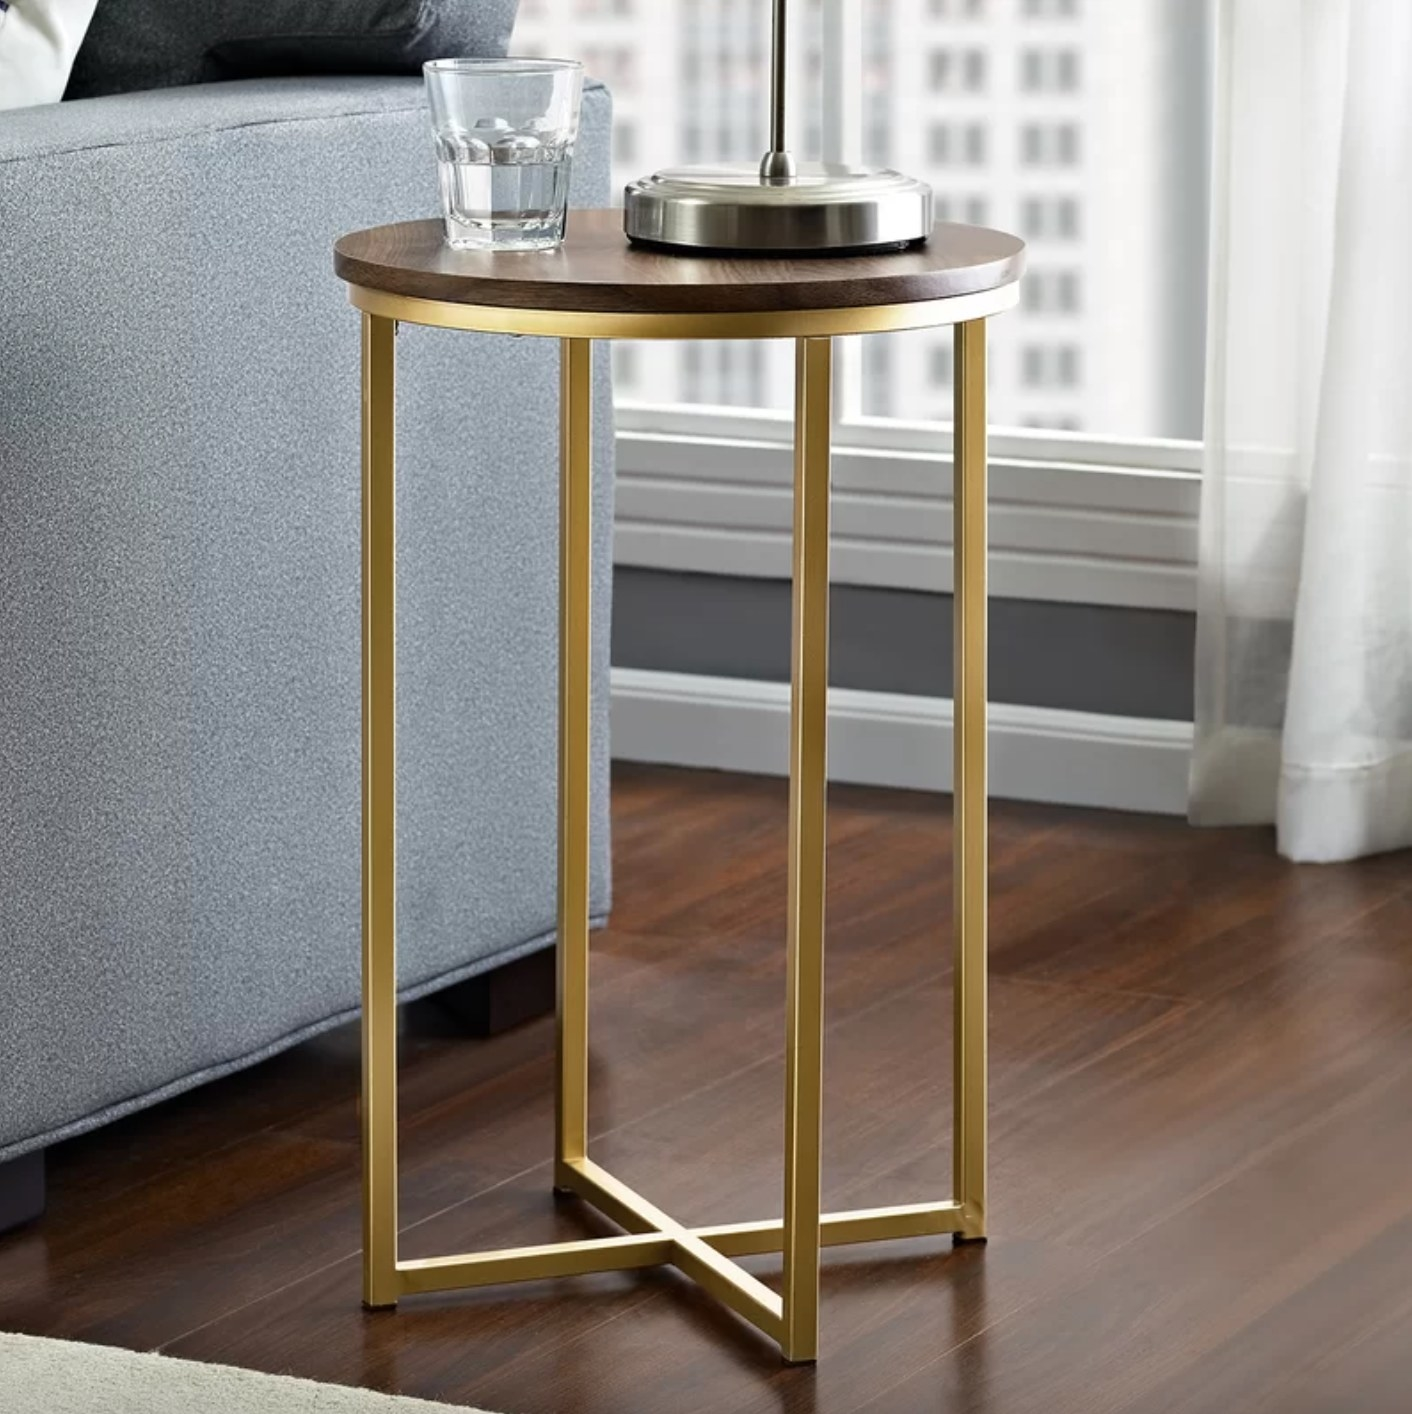 The end table in metal with a dark walnut wood top